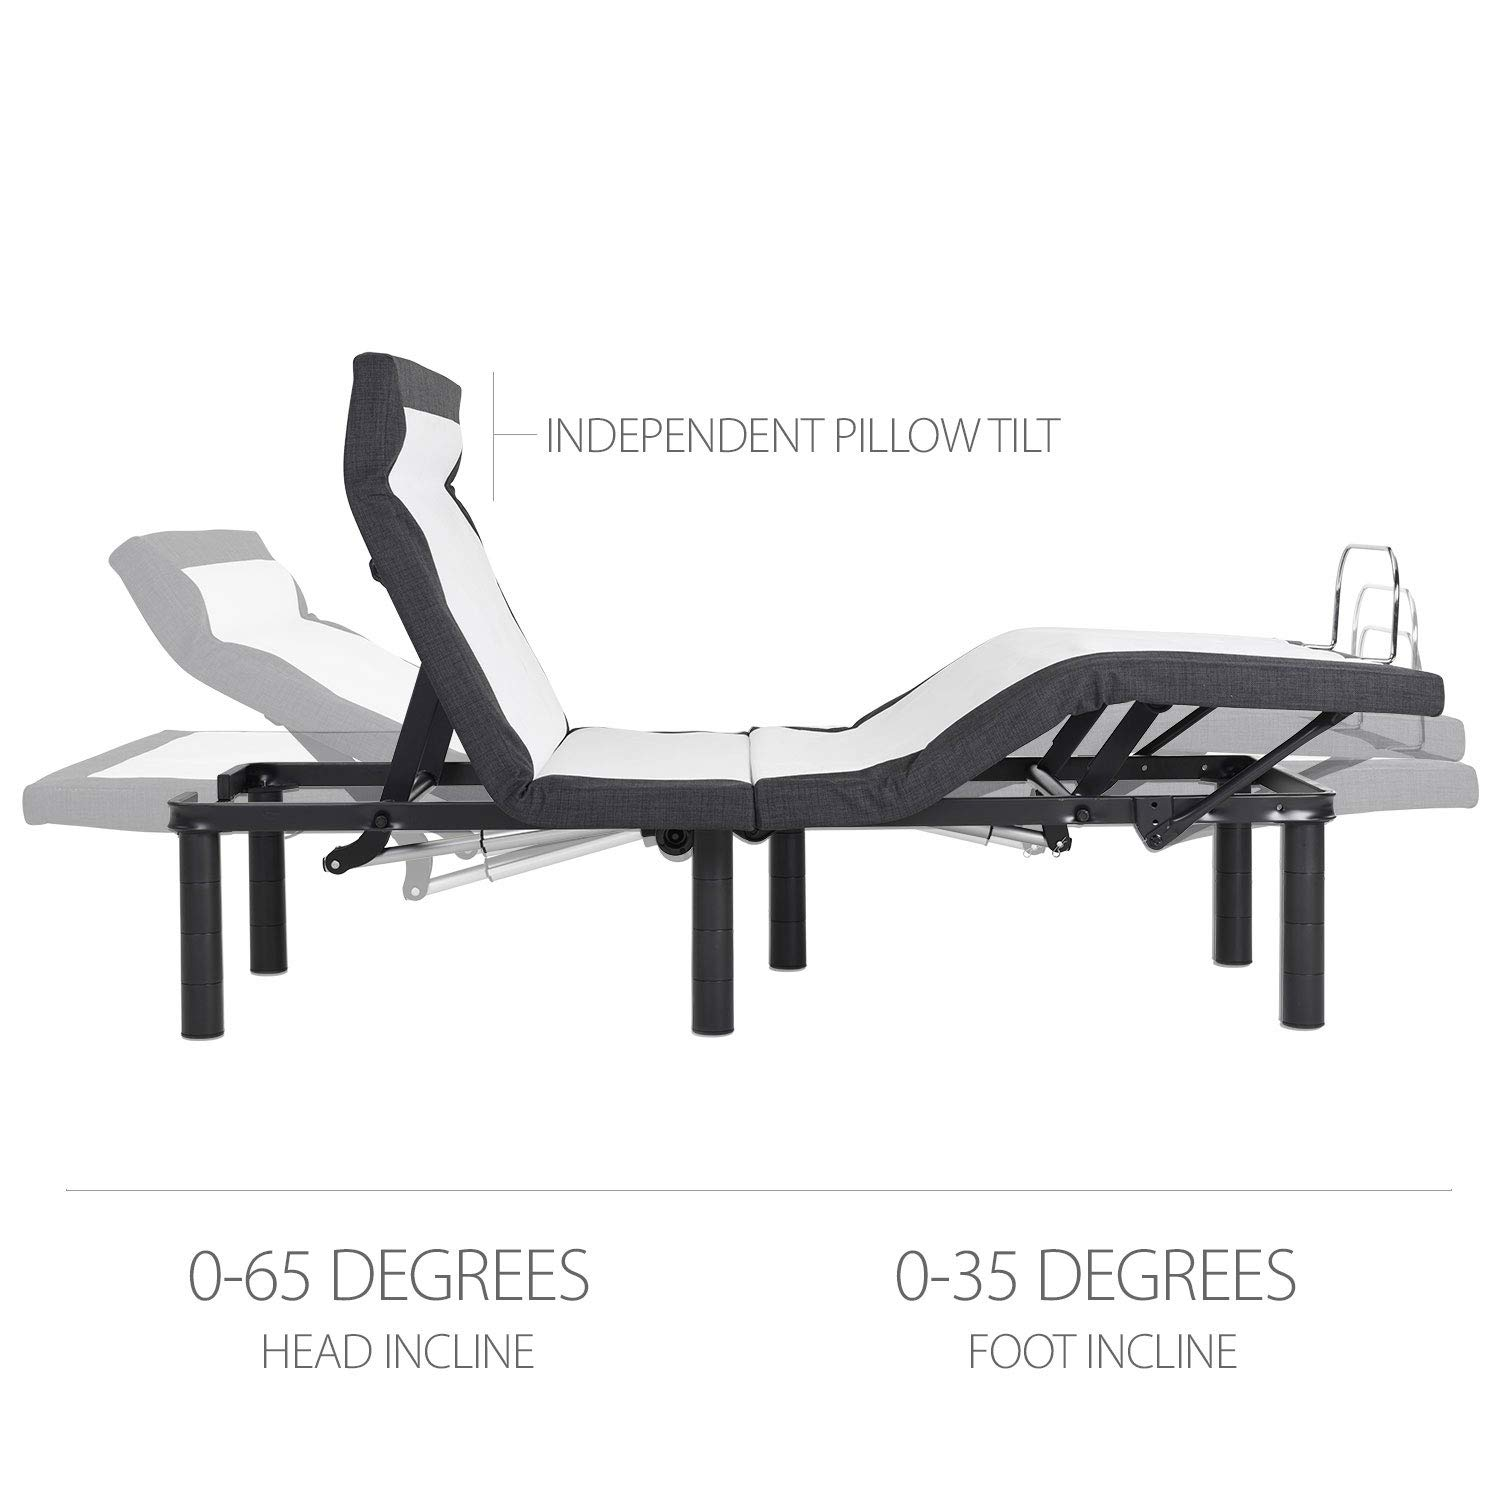 Adjustable Bed Frame with Head Tilt, Massage, Anti-Snore, Zero Gravity, Dual USB Charging Station, Under Bed Nightlight, Wireless Remote Head and Foot Incline (Twin XL)